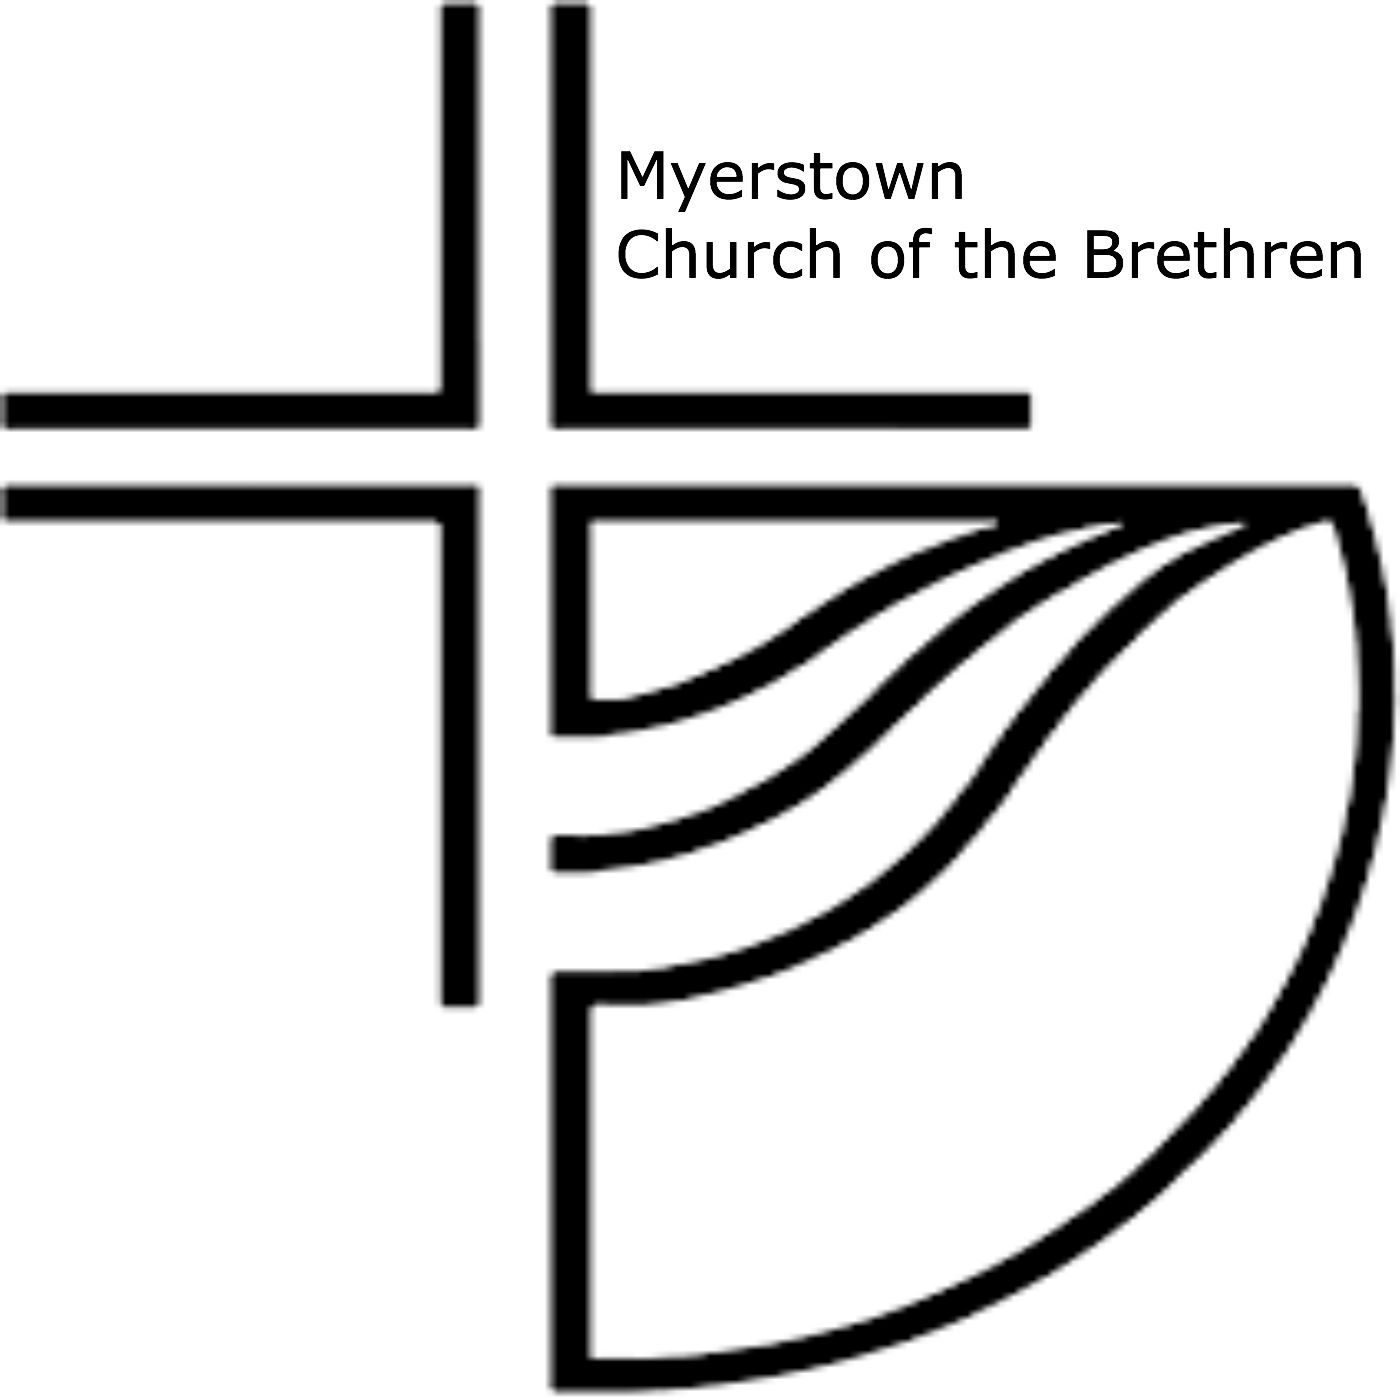 Myerstown Church of the Brethren